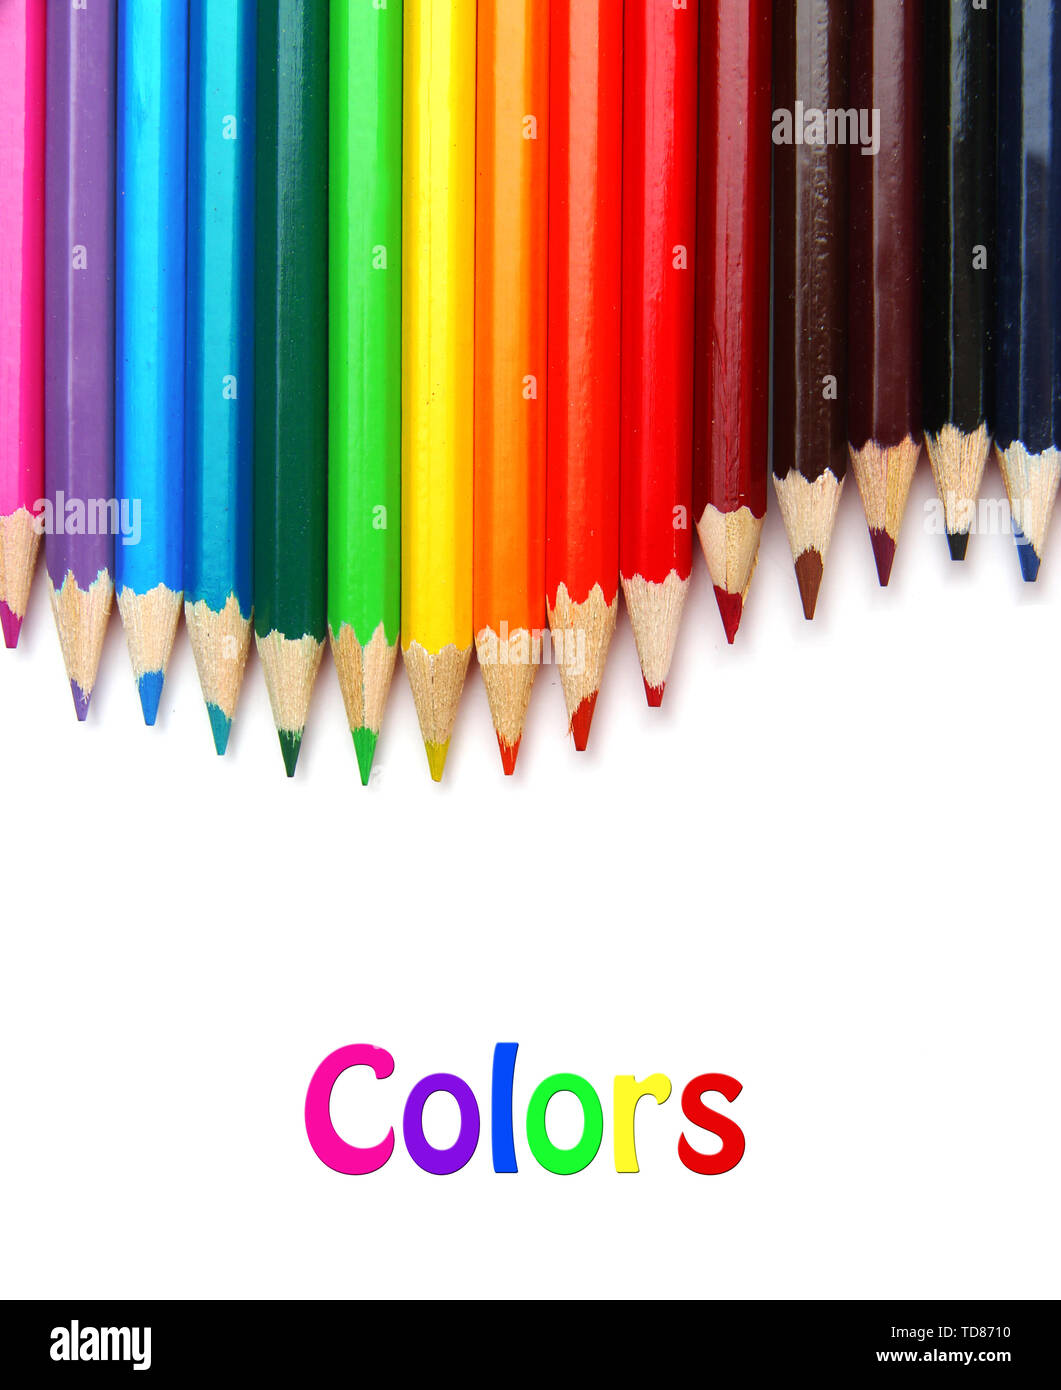 Colour pencils isolated on white - Stock Image